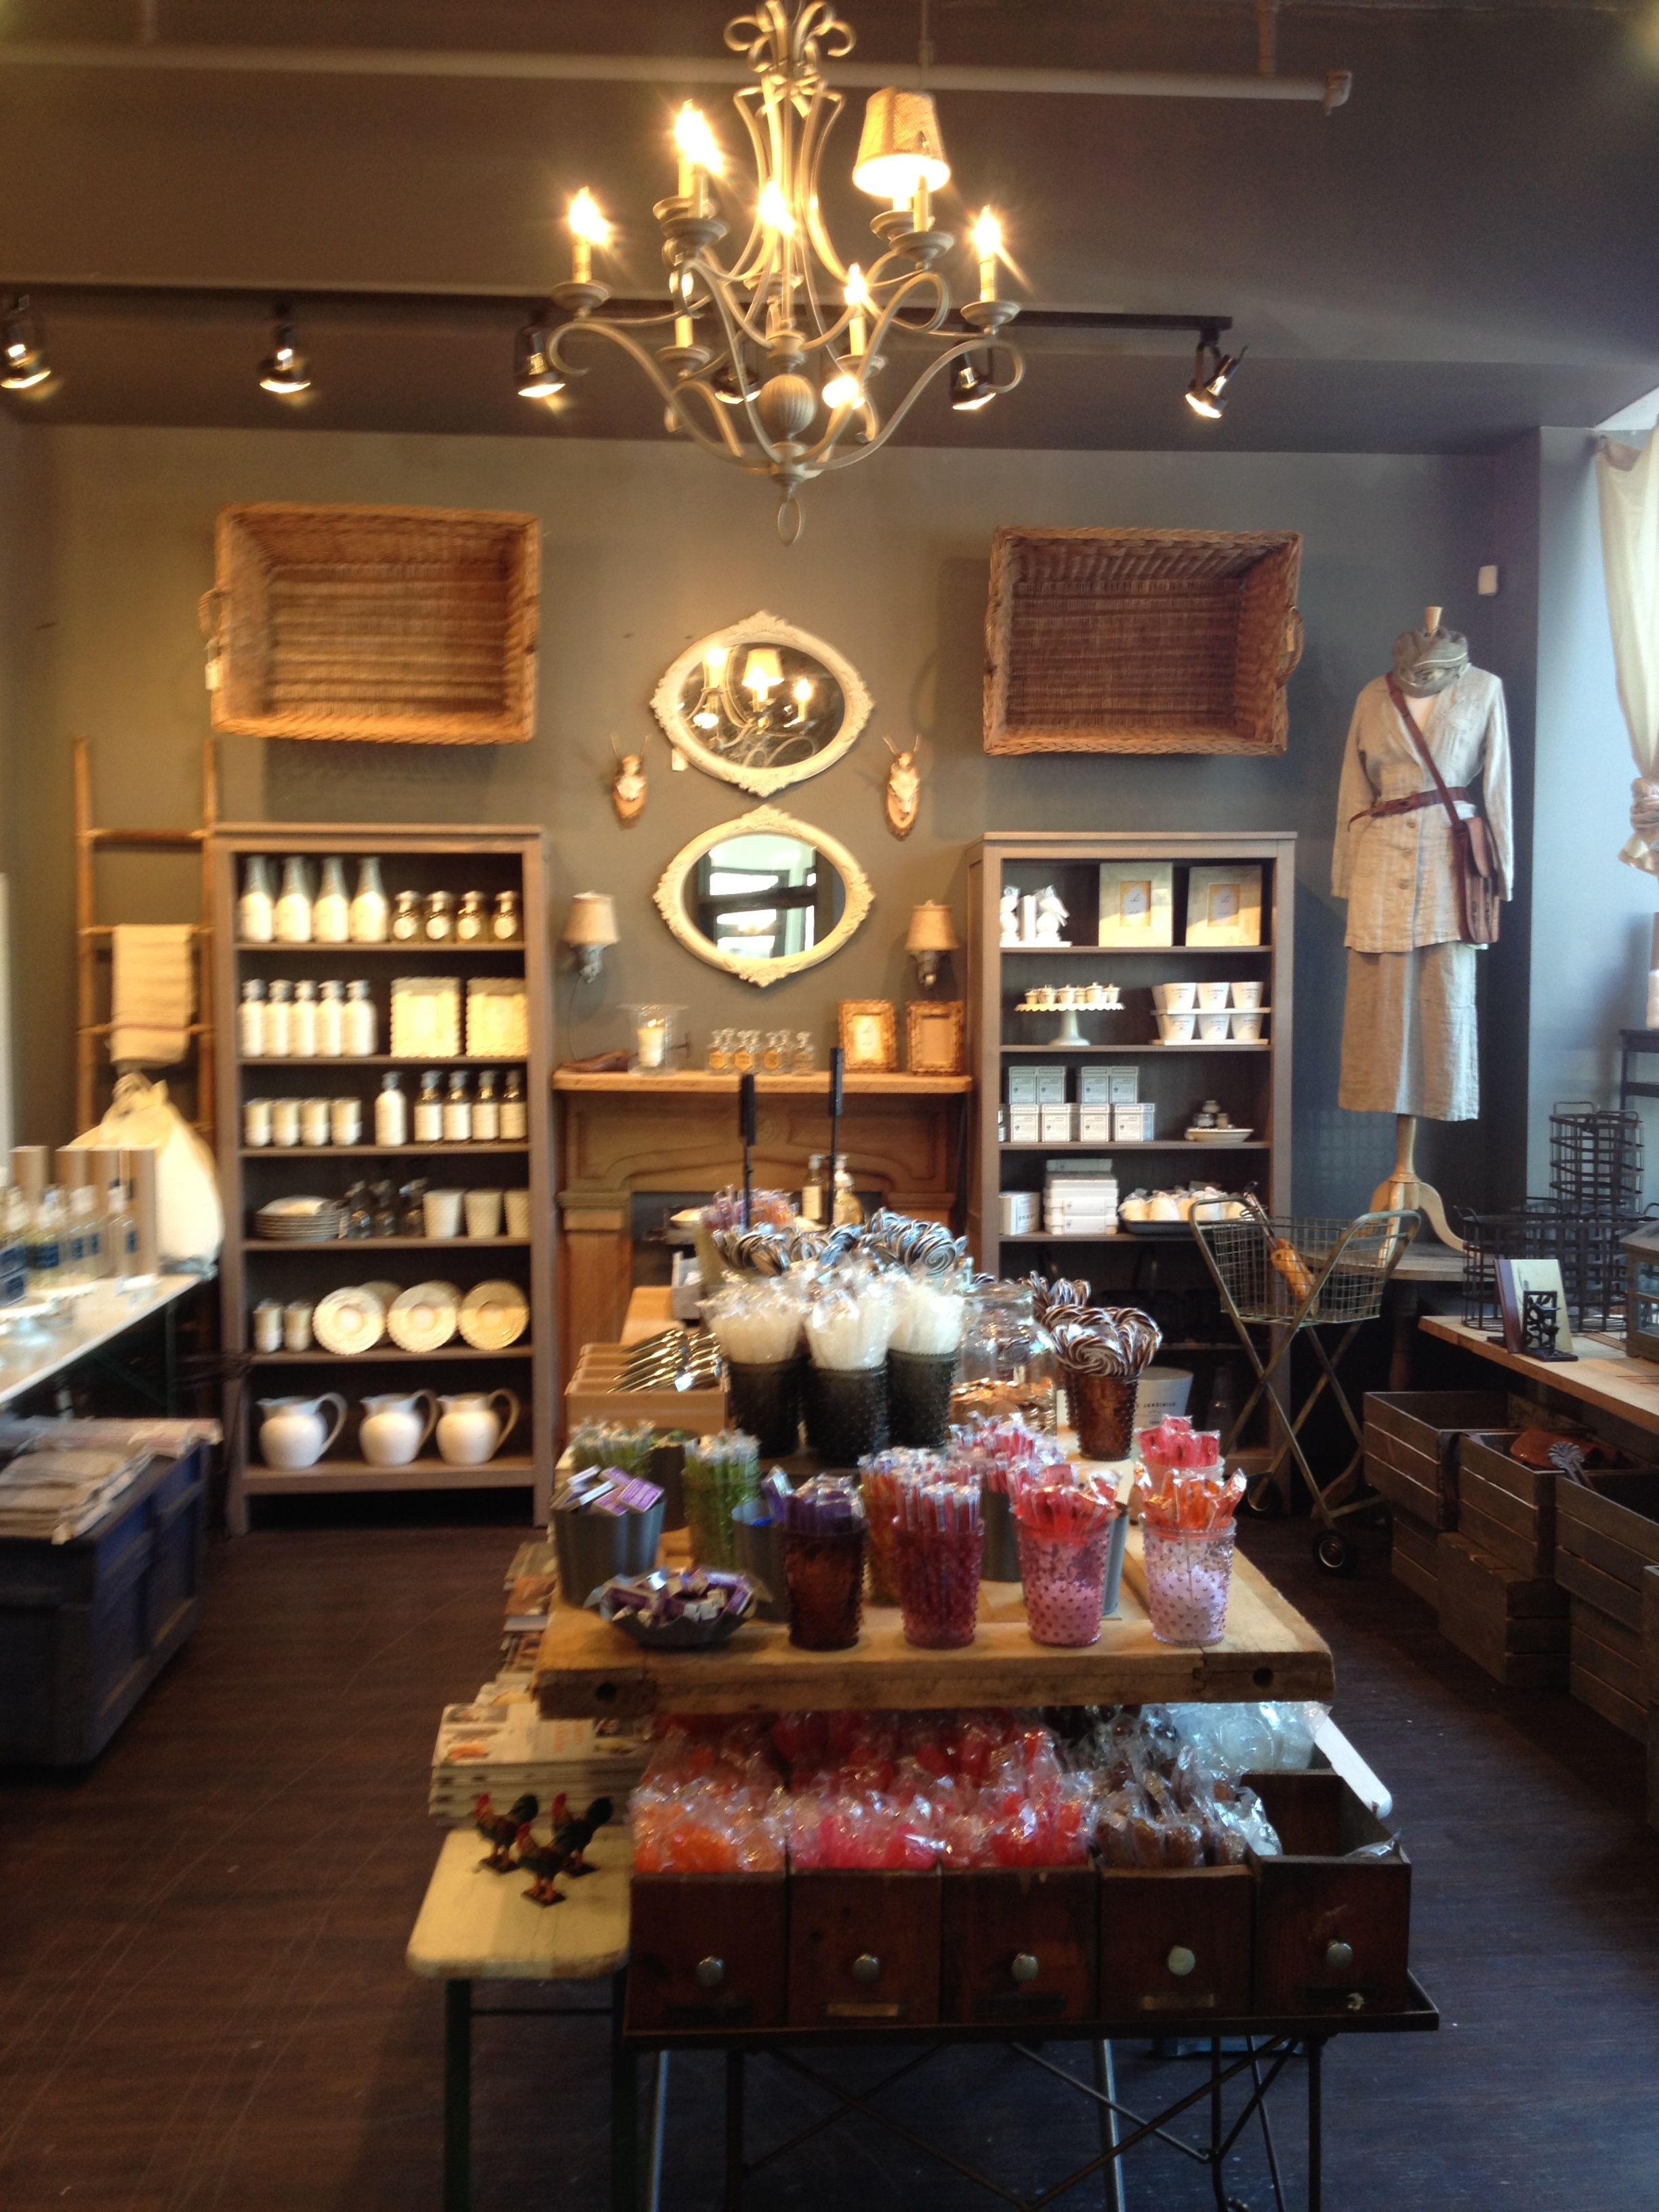 K hall designs store, St. Louis MO (With images) | Retail ...